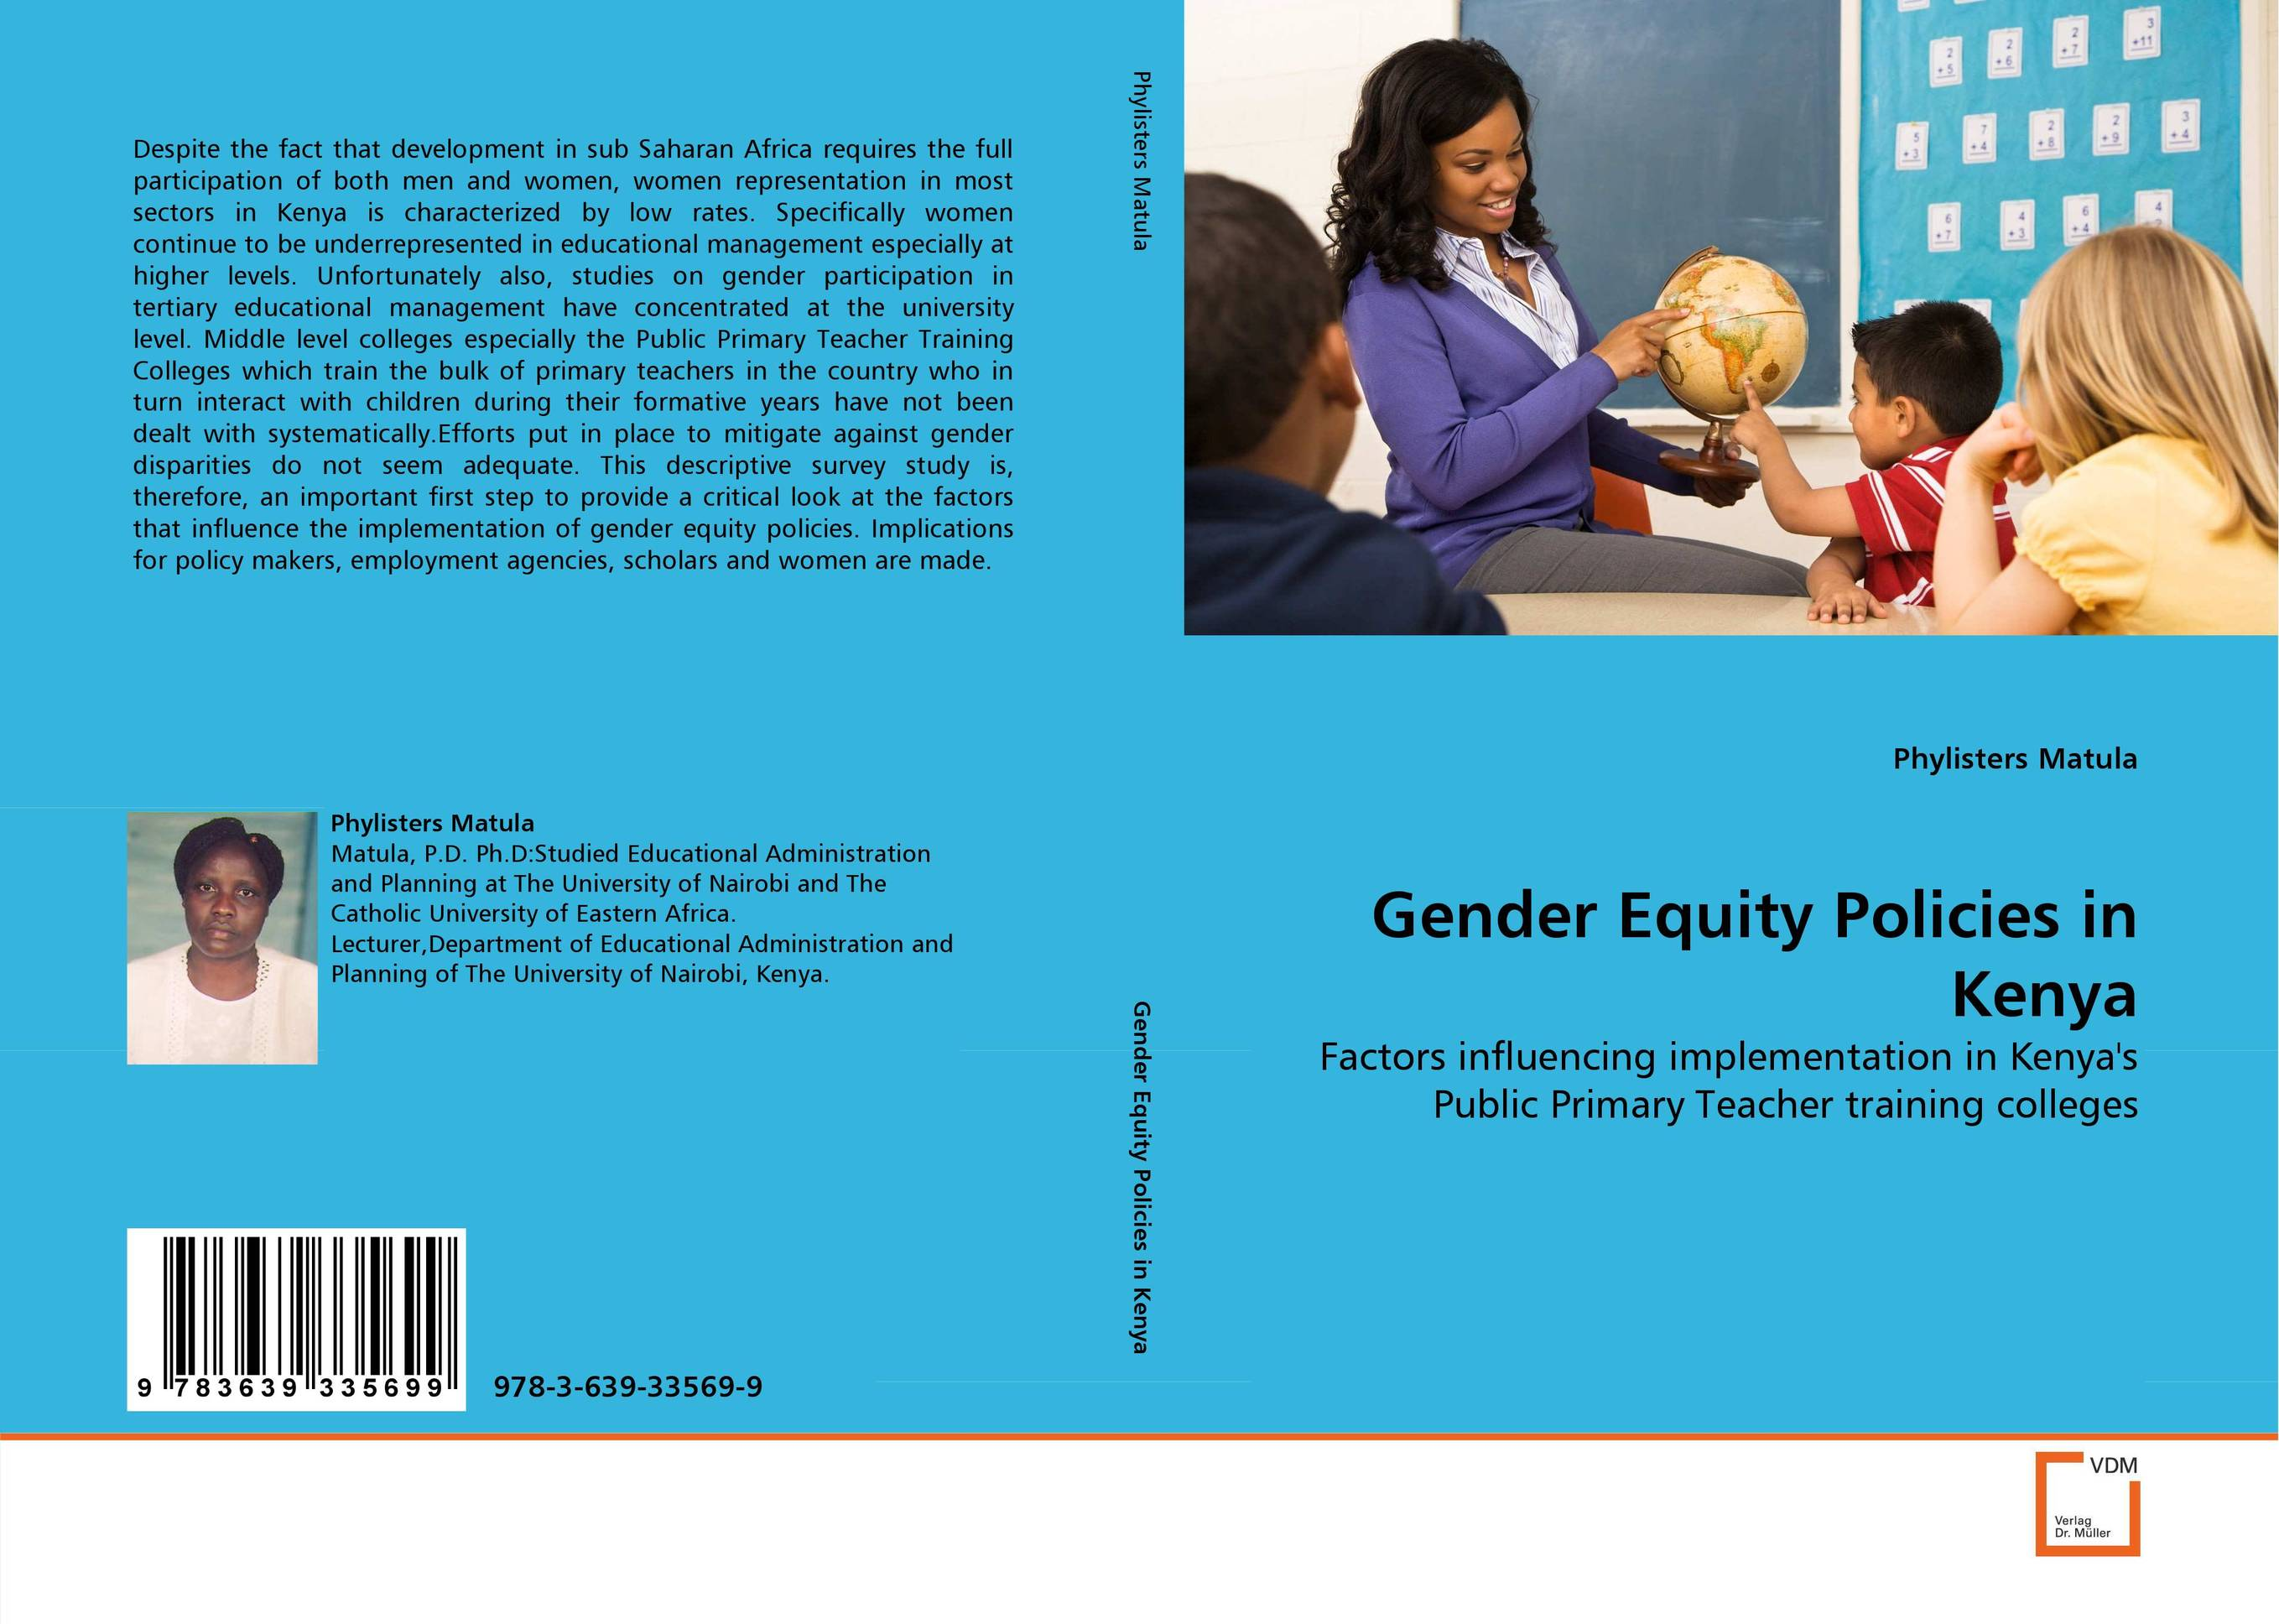 Gender Equity Policies in Kenya microsimulation modeling of ict policies at firm level